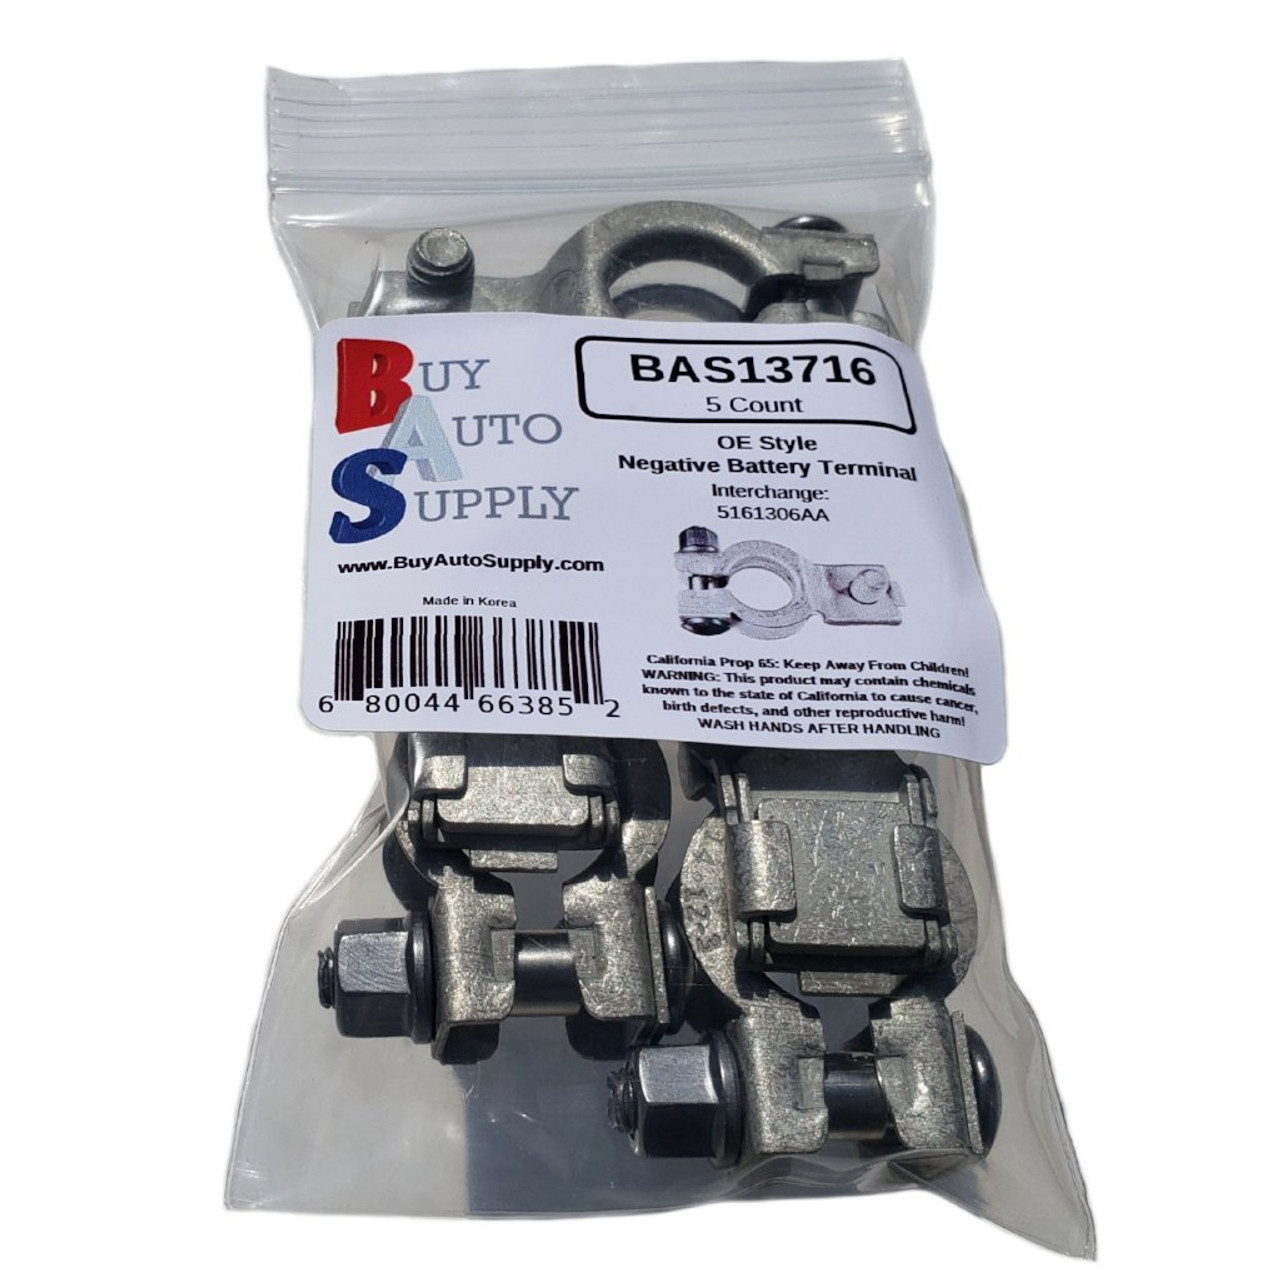 Bag of 5 Negative Top Mount Battery Terminal - Chrysler, Dodge, Jeep, Ram Style - Interchanges 5161306AA